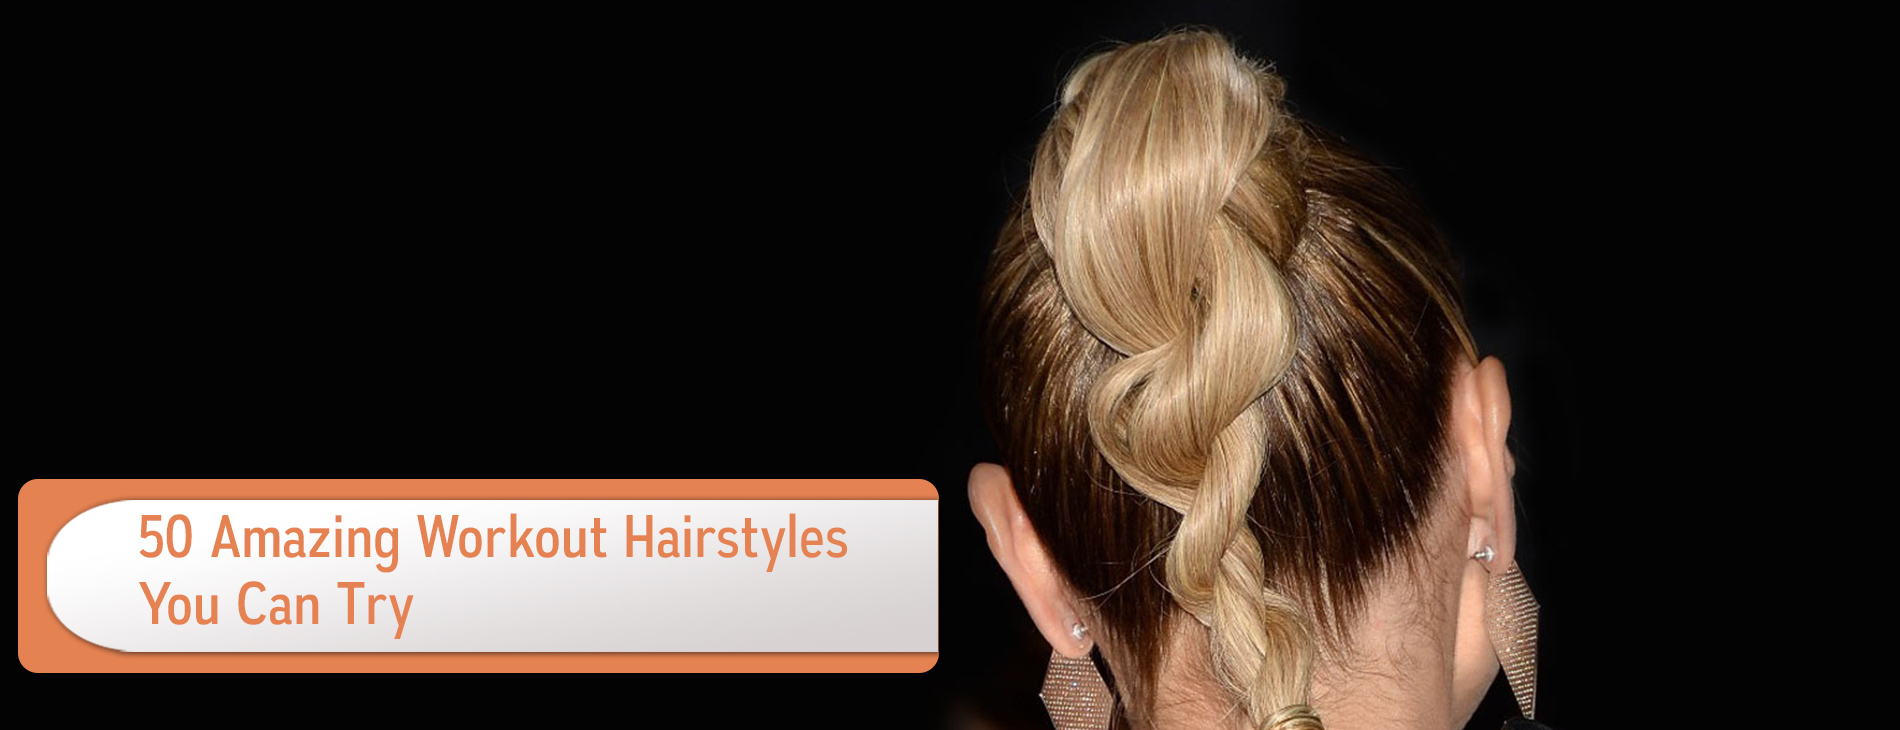 50-Amazing-Workout-Hairstyles-You-Can-Try